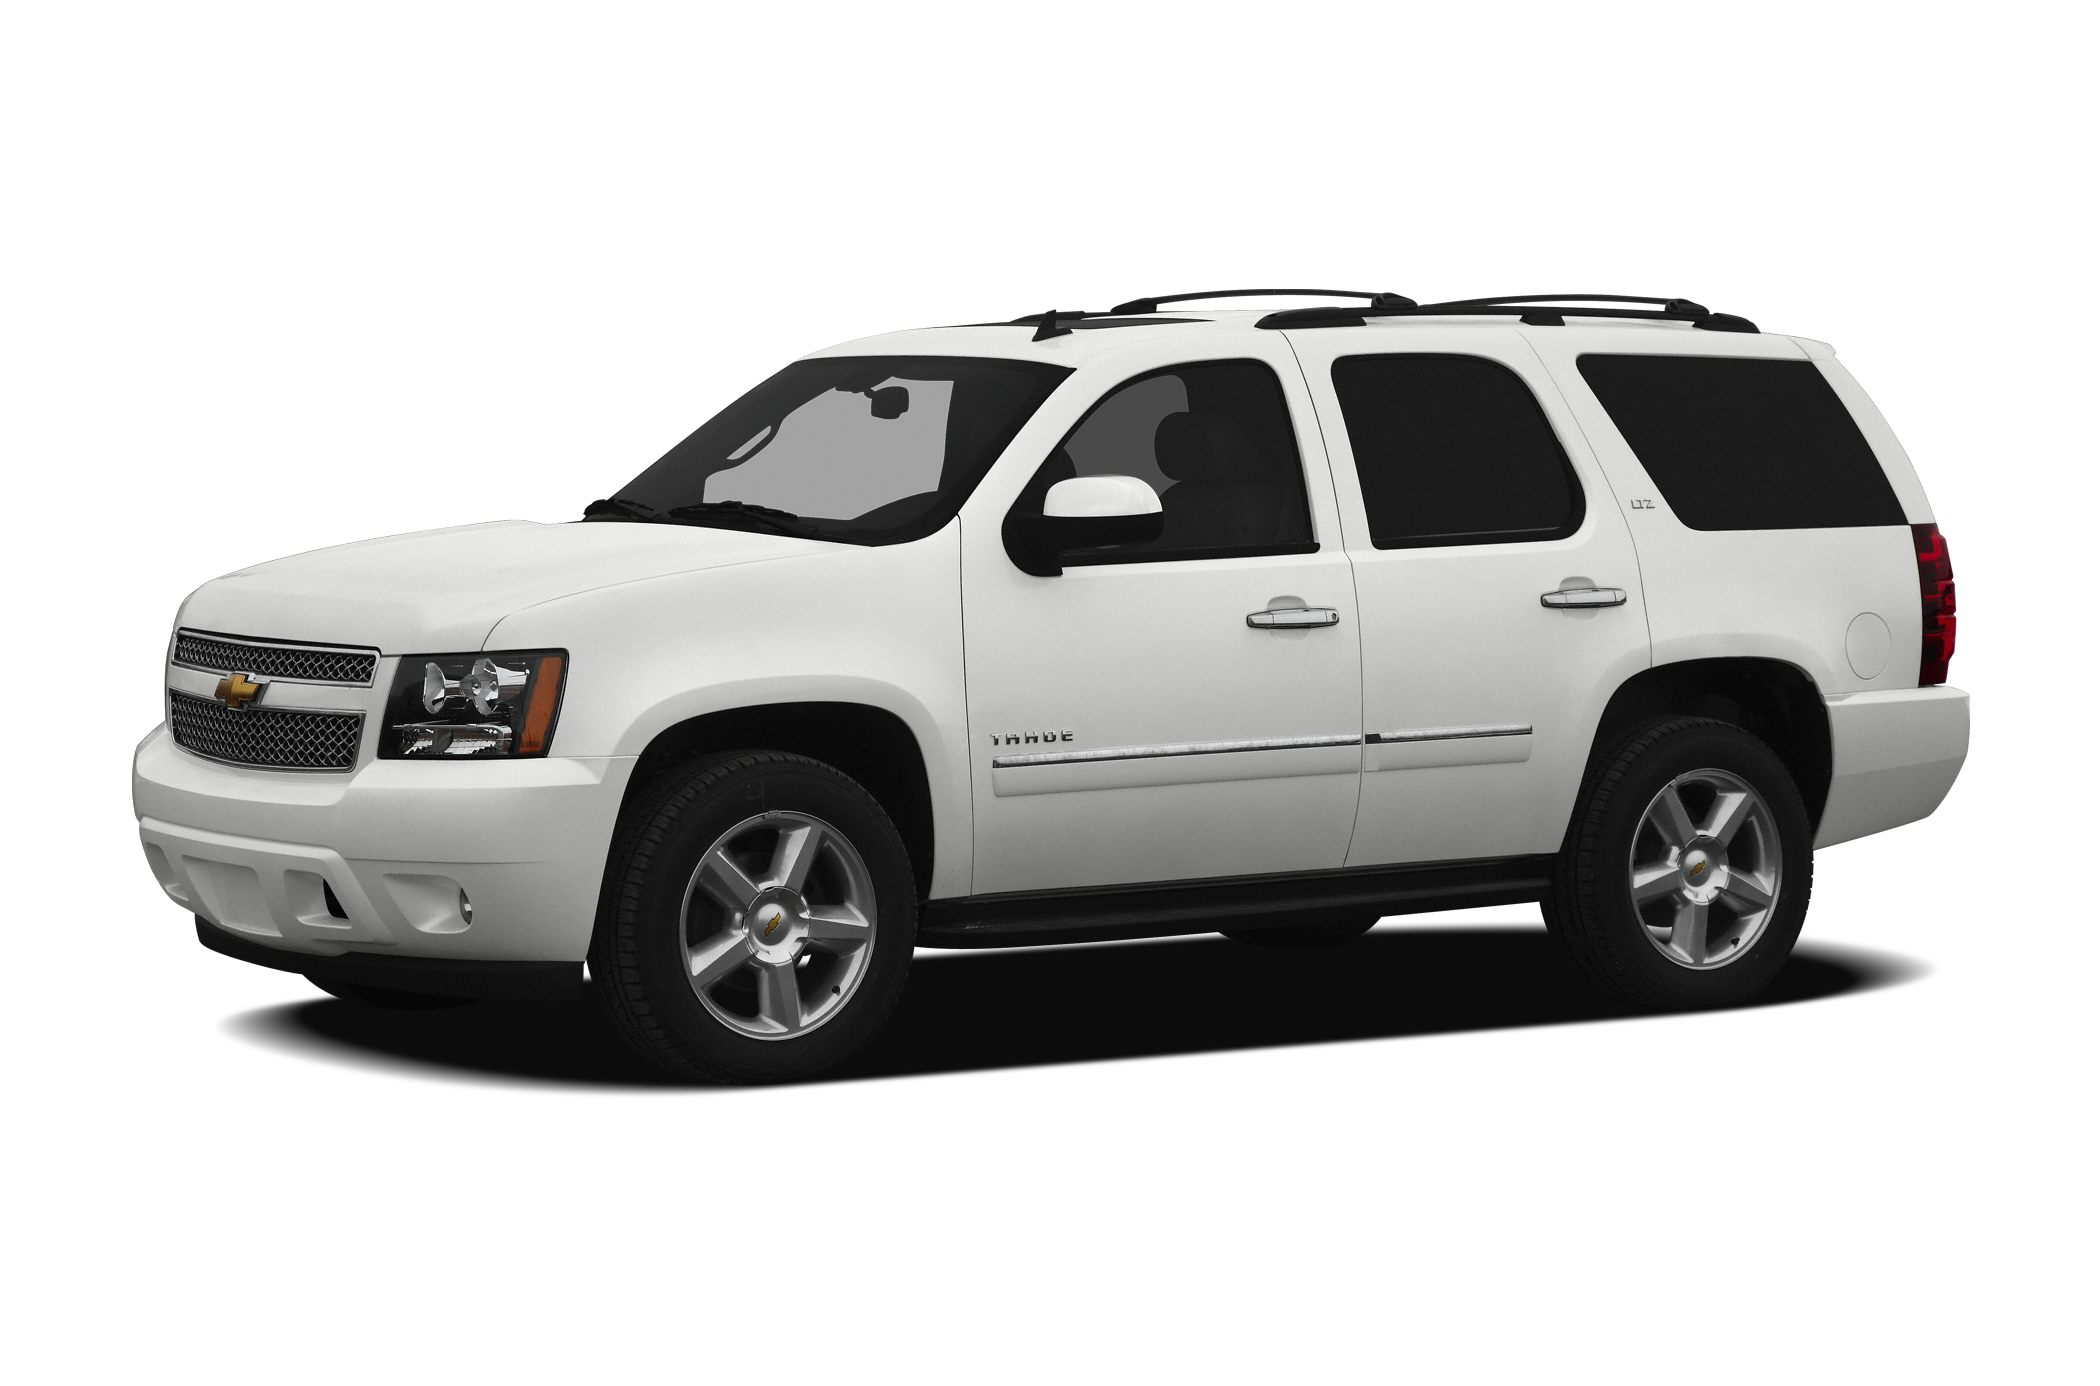 2008 Chevrolet Tahoe LS SUV for sale in Mabank for $19,625 with 124,021 miles